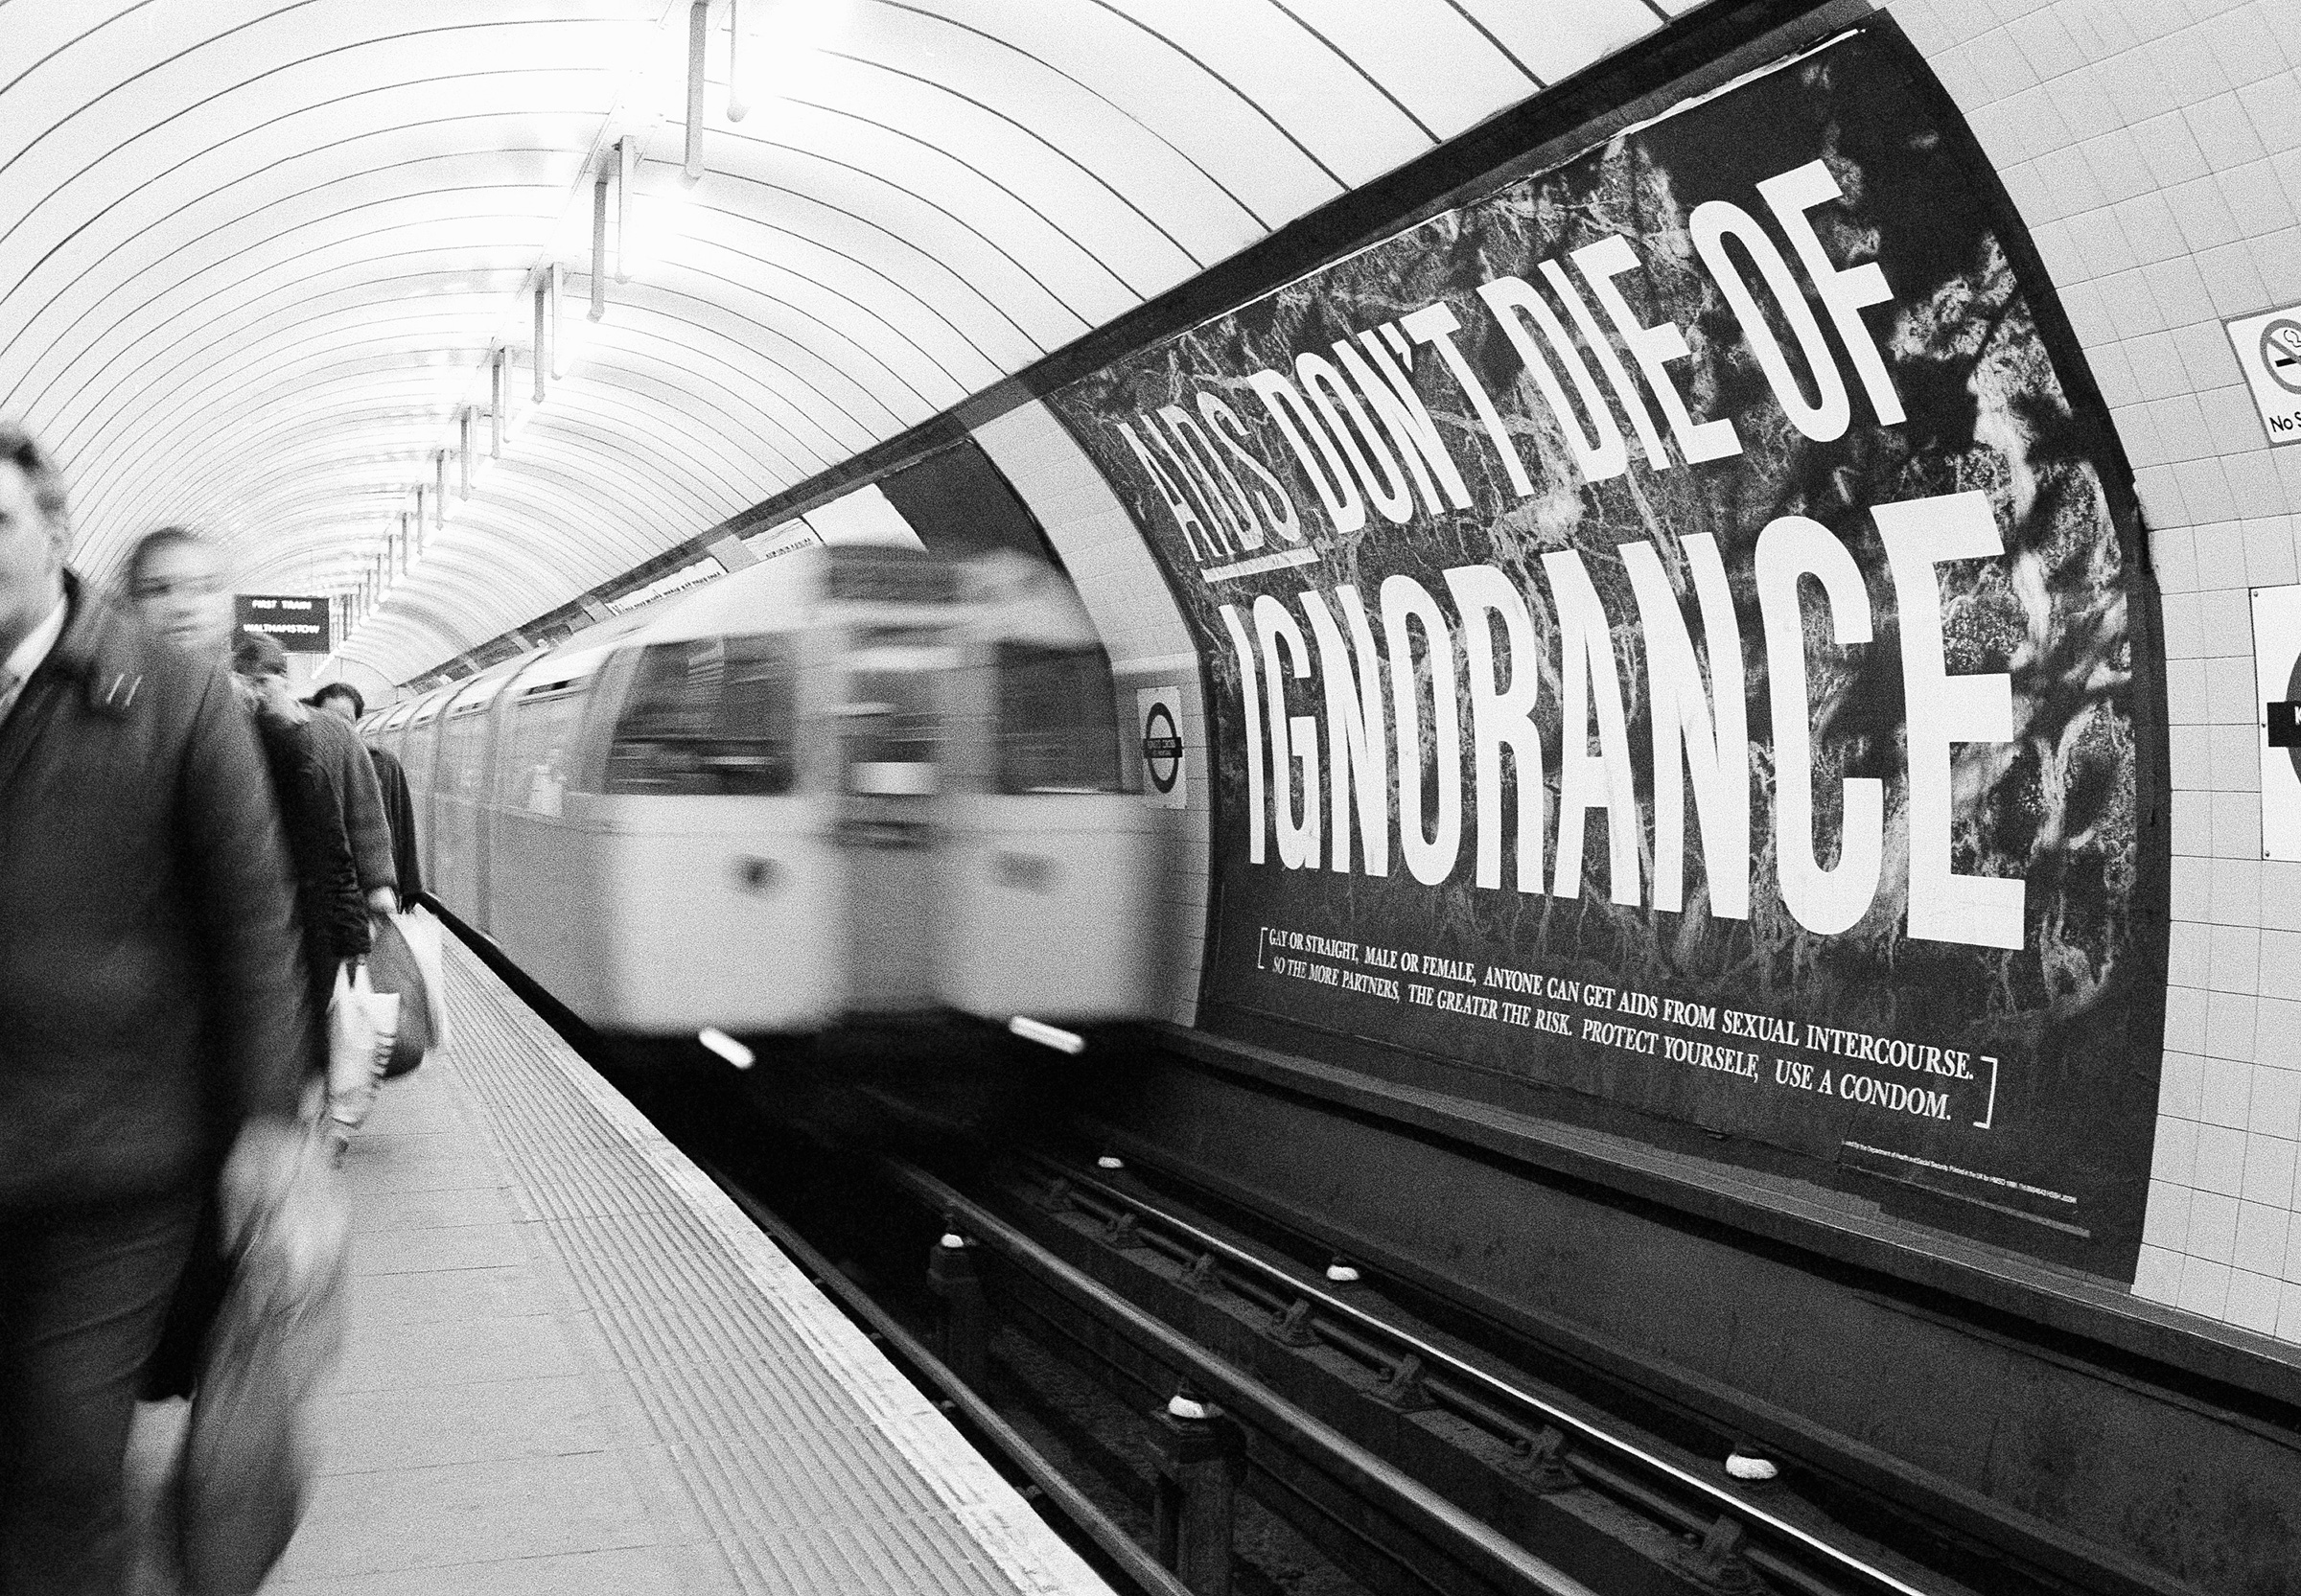 With an average of two people a day dying of AIDS in Britain, the government blitzed the nation with warning posters as part of its 20 million pound media campaign, pictured on March 5, 1987. This poster confronted passengers at the Kings Cross subway station in central London.